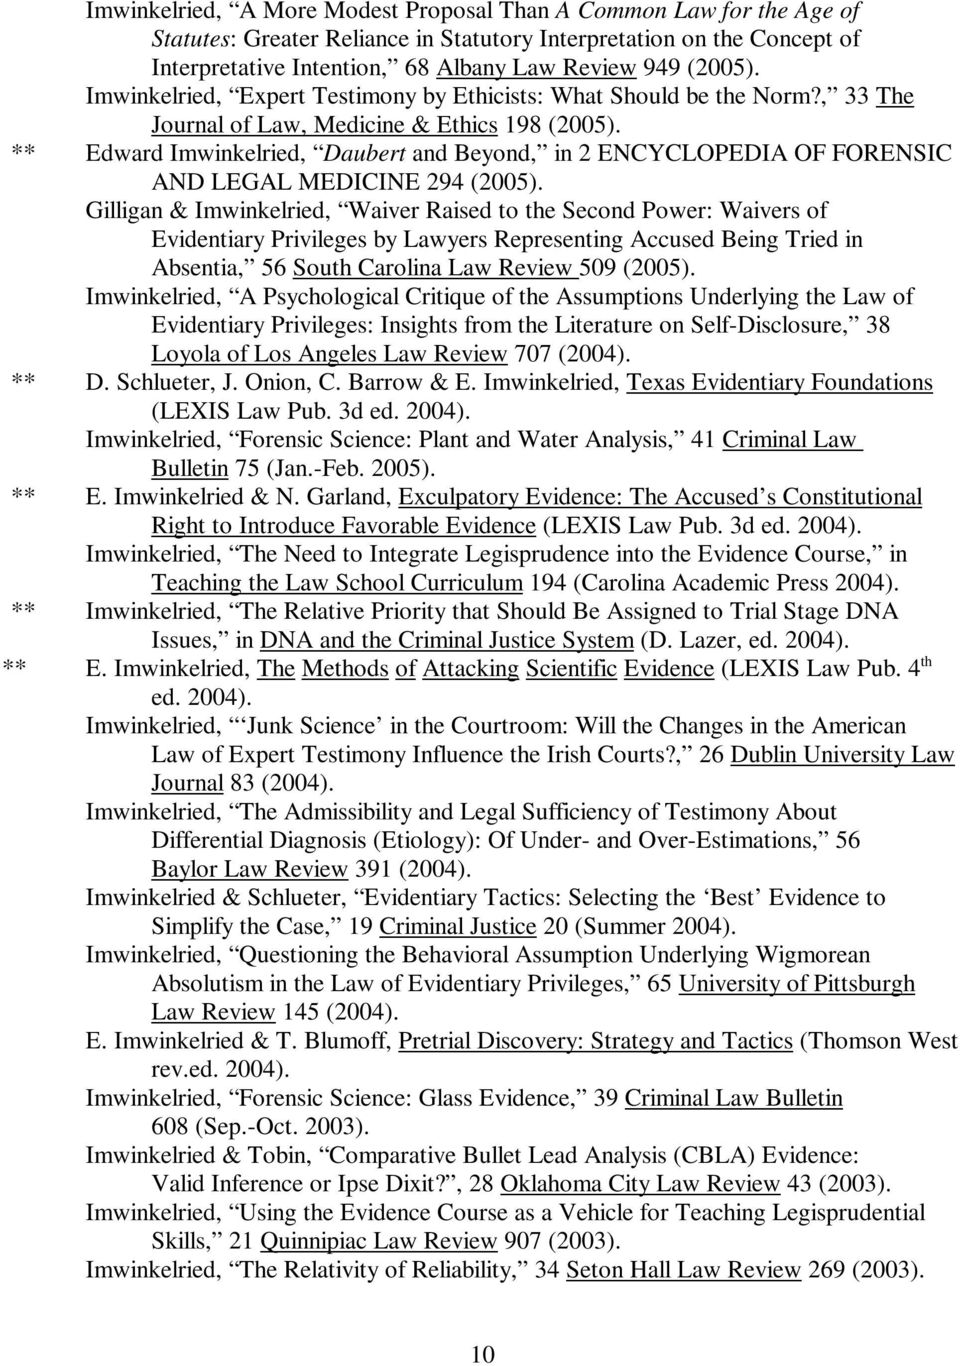 ** Edward Imwinkelried, Daubert and Beyond, in 2 ENCYCLOPEDIA OF FORENSIC AND LEGAL MEDICINE 294 (2005).